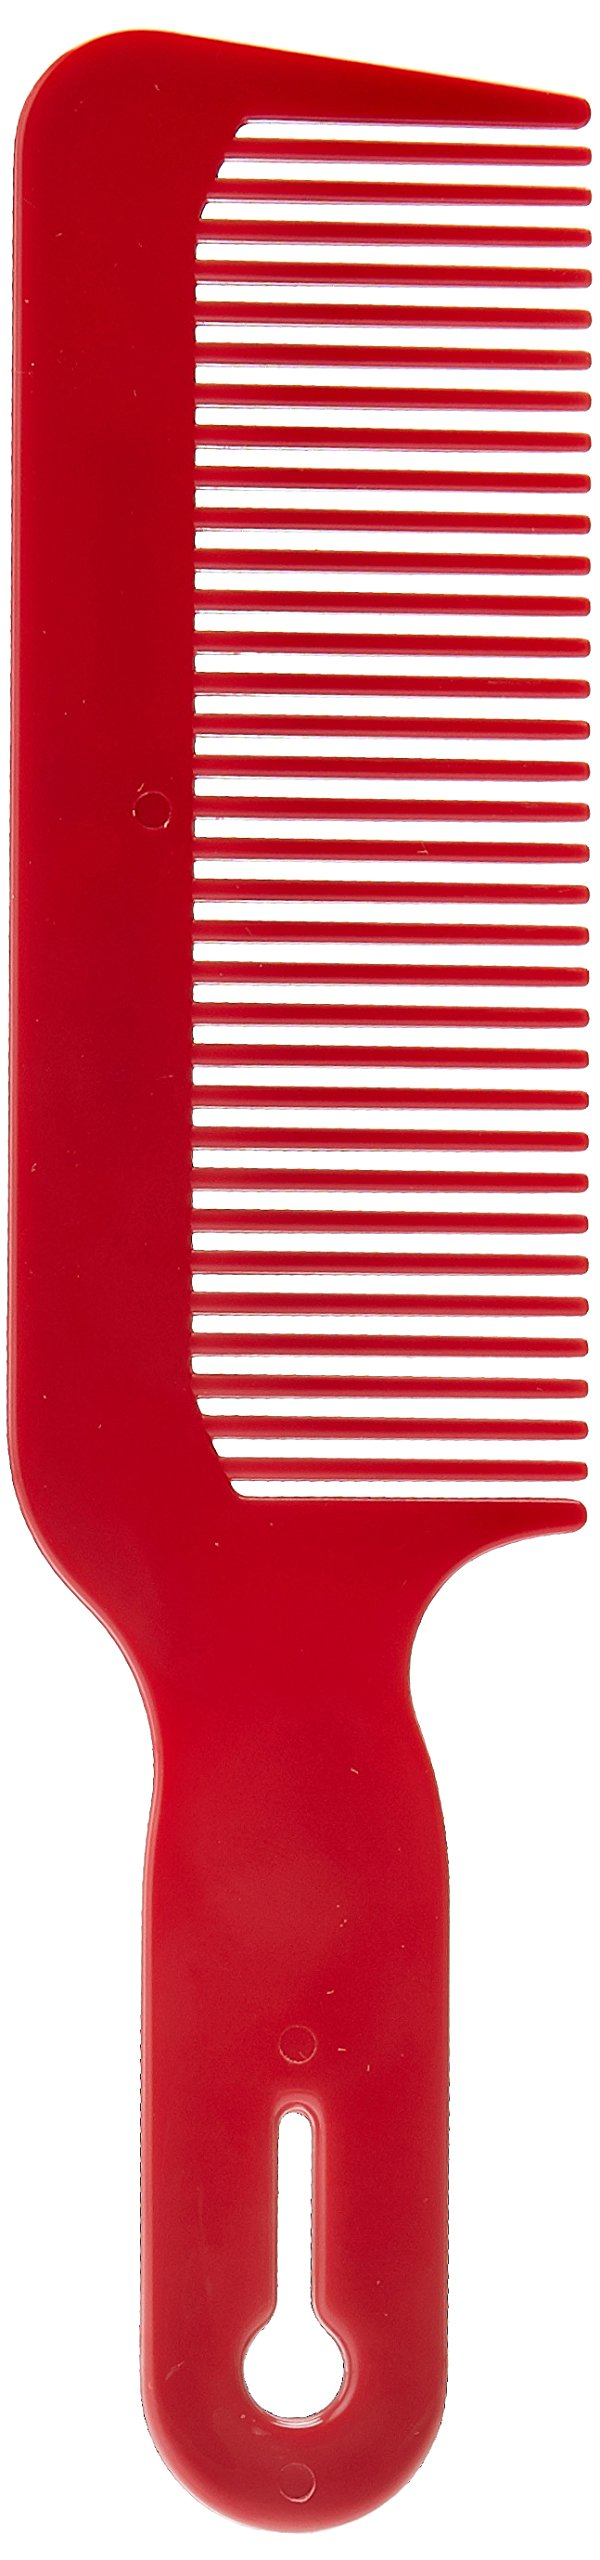 Speed-O-Guide Flatopper Comb, 12 Count